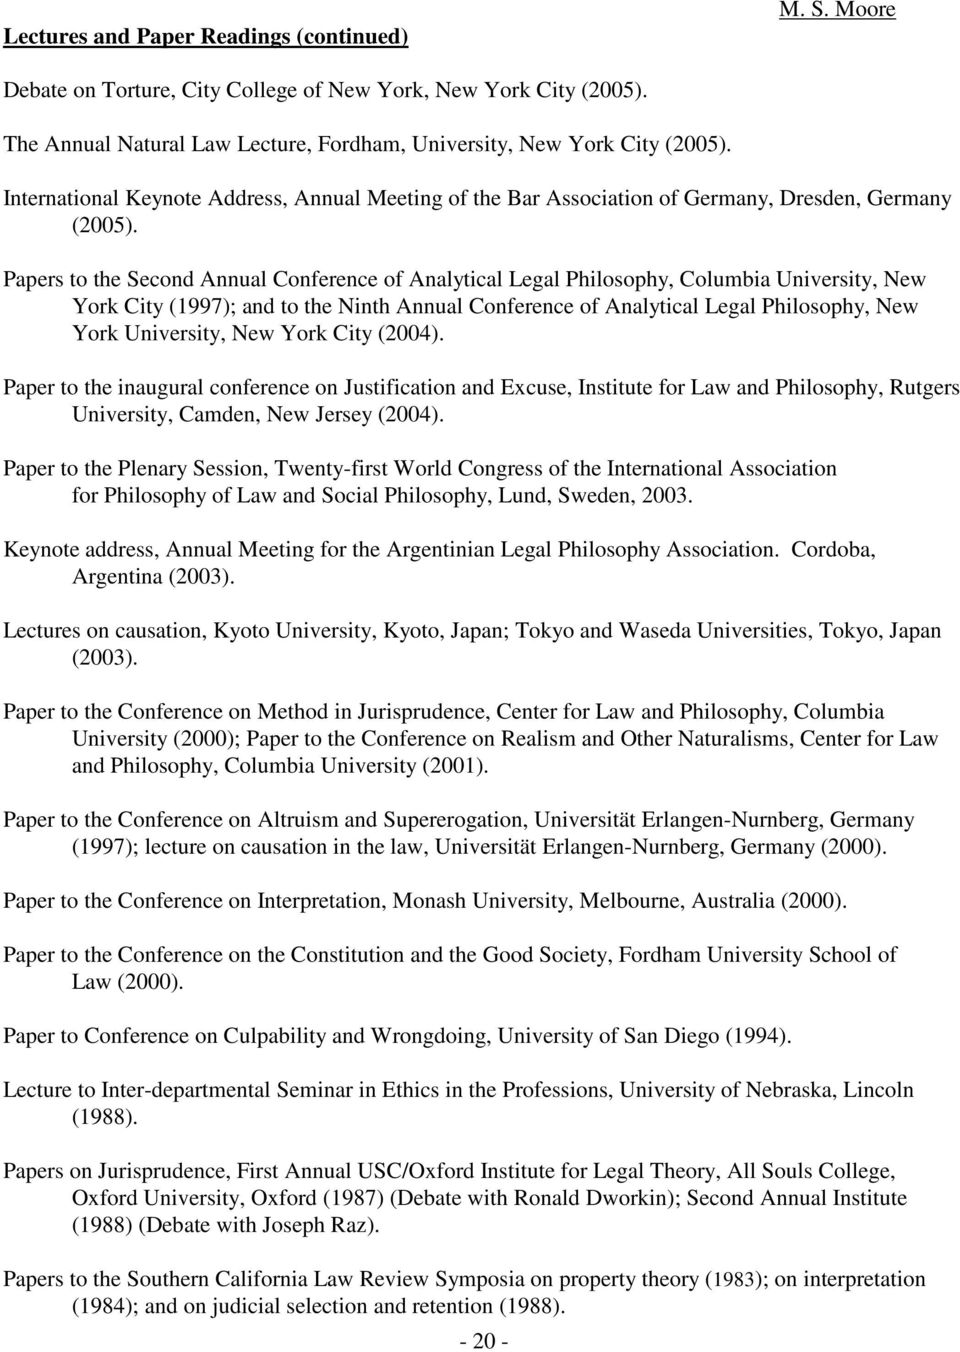 Papers to the Second Annual Conference of Analytical Legal Philosophy, Columbia University, New York City (1997); and to the Ninth Annual Conference of Analytical Legal Philosophy, New York